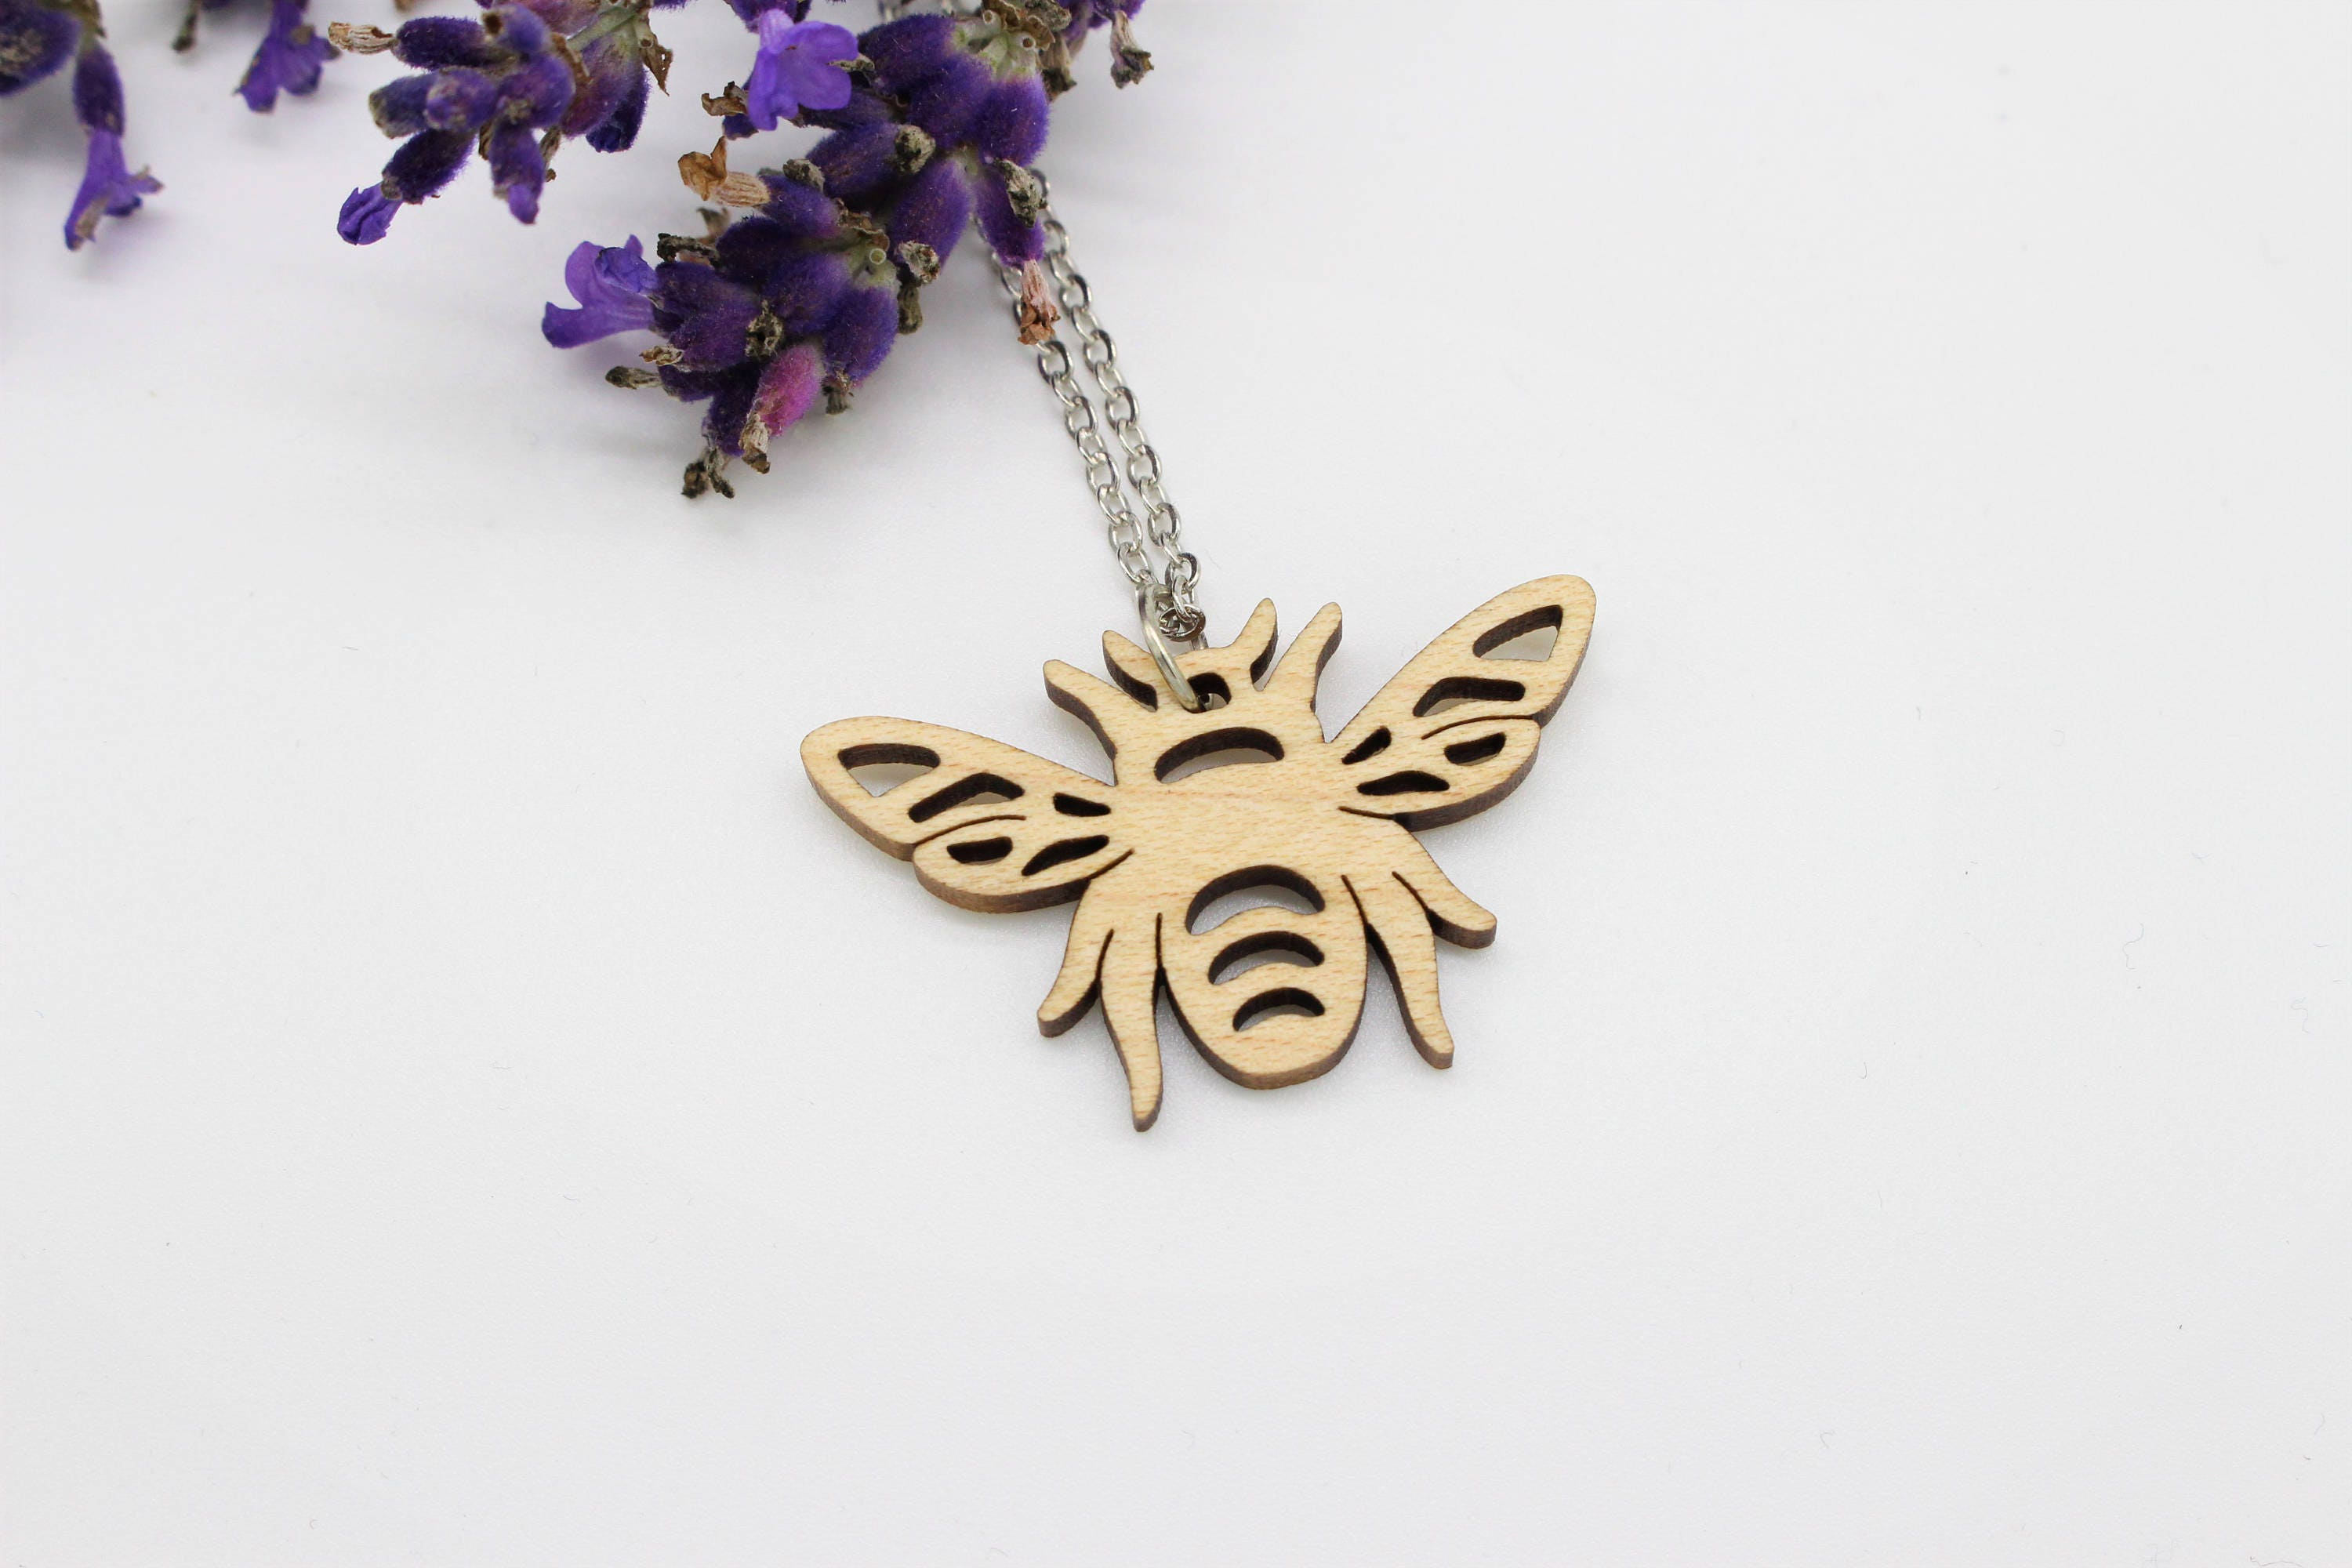 burtonhoneycomb up bee olivia close honey rose honeycomb pendant gold cocomi necklace products